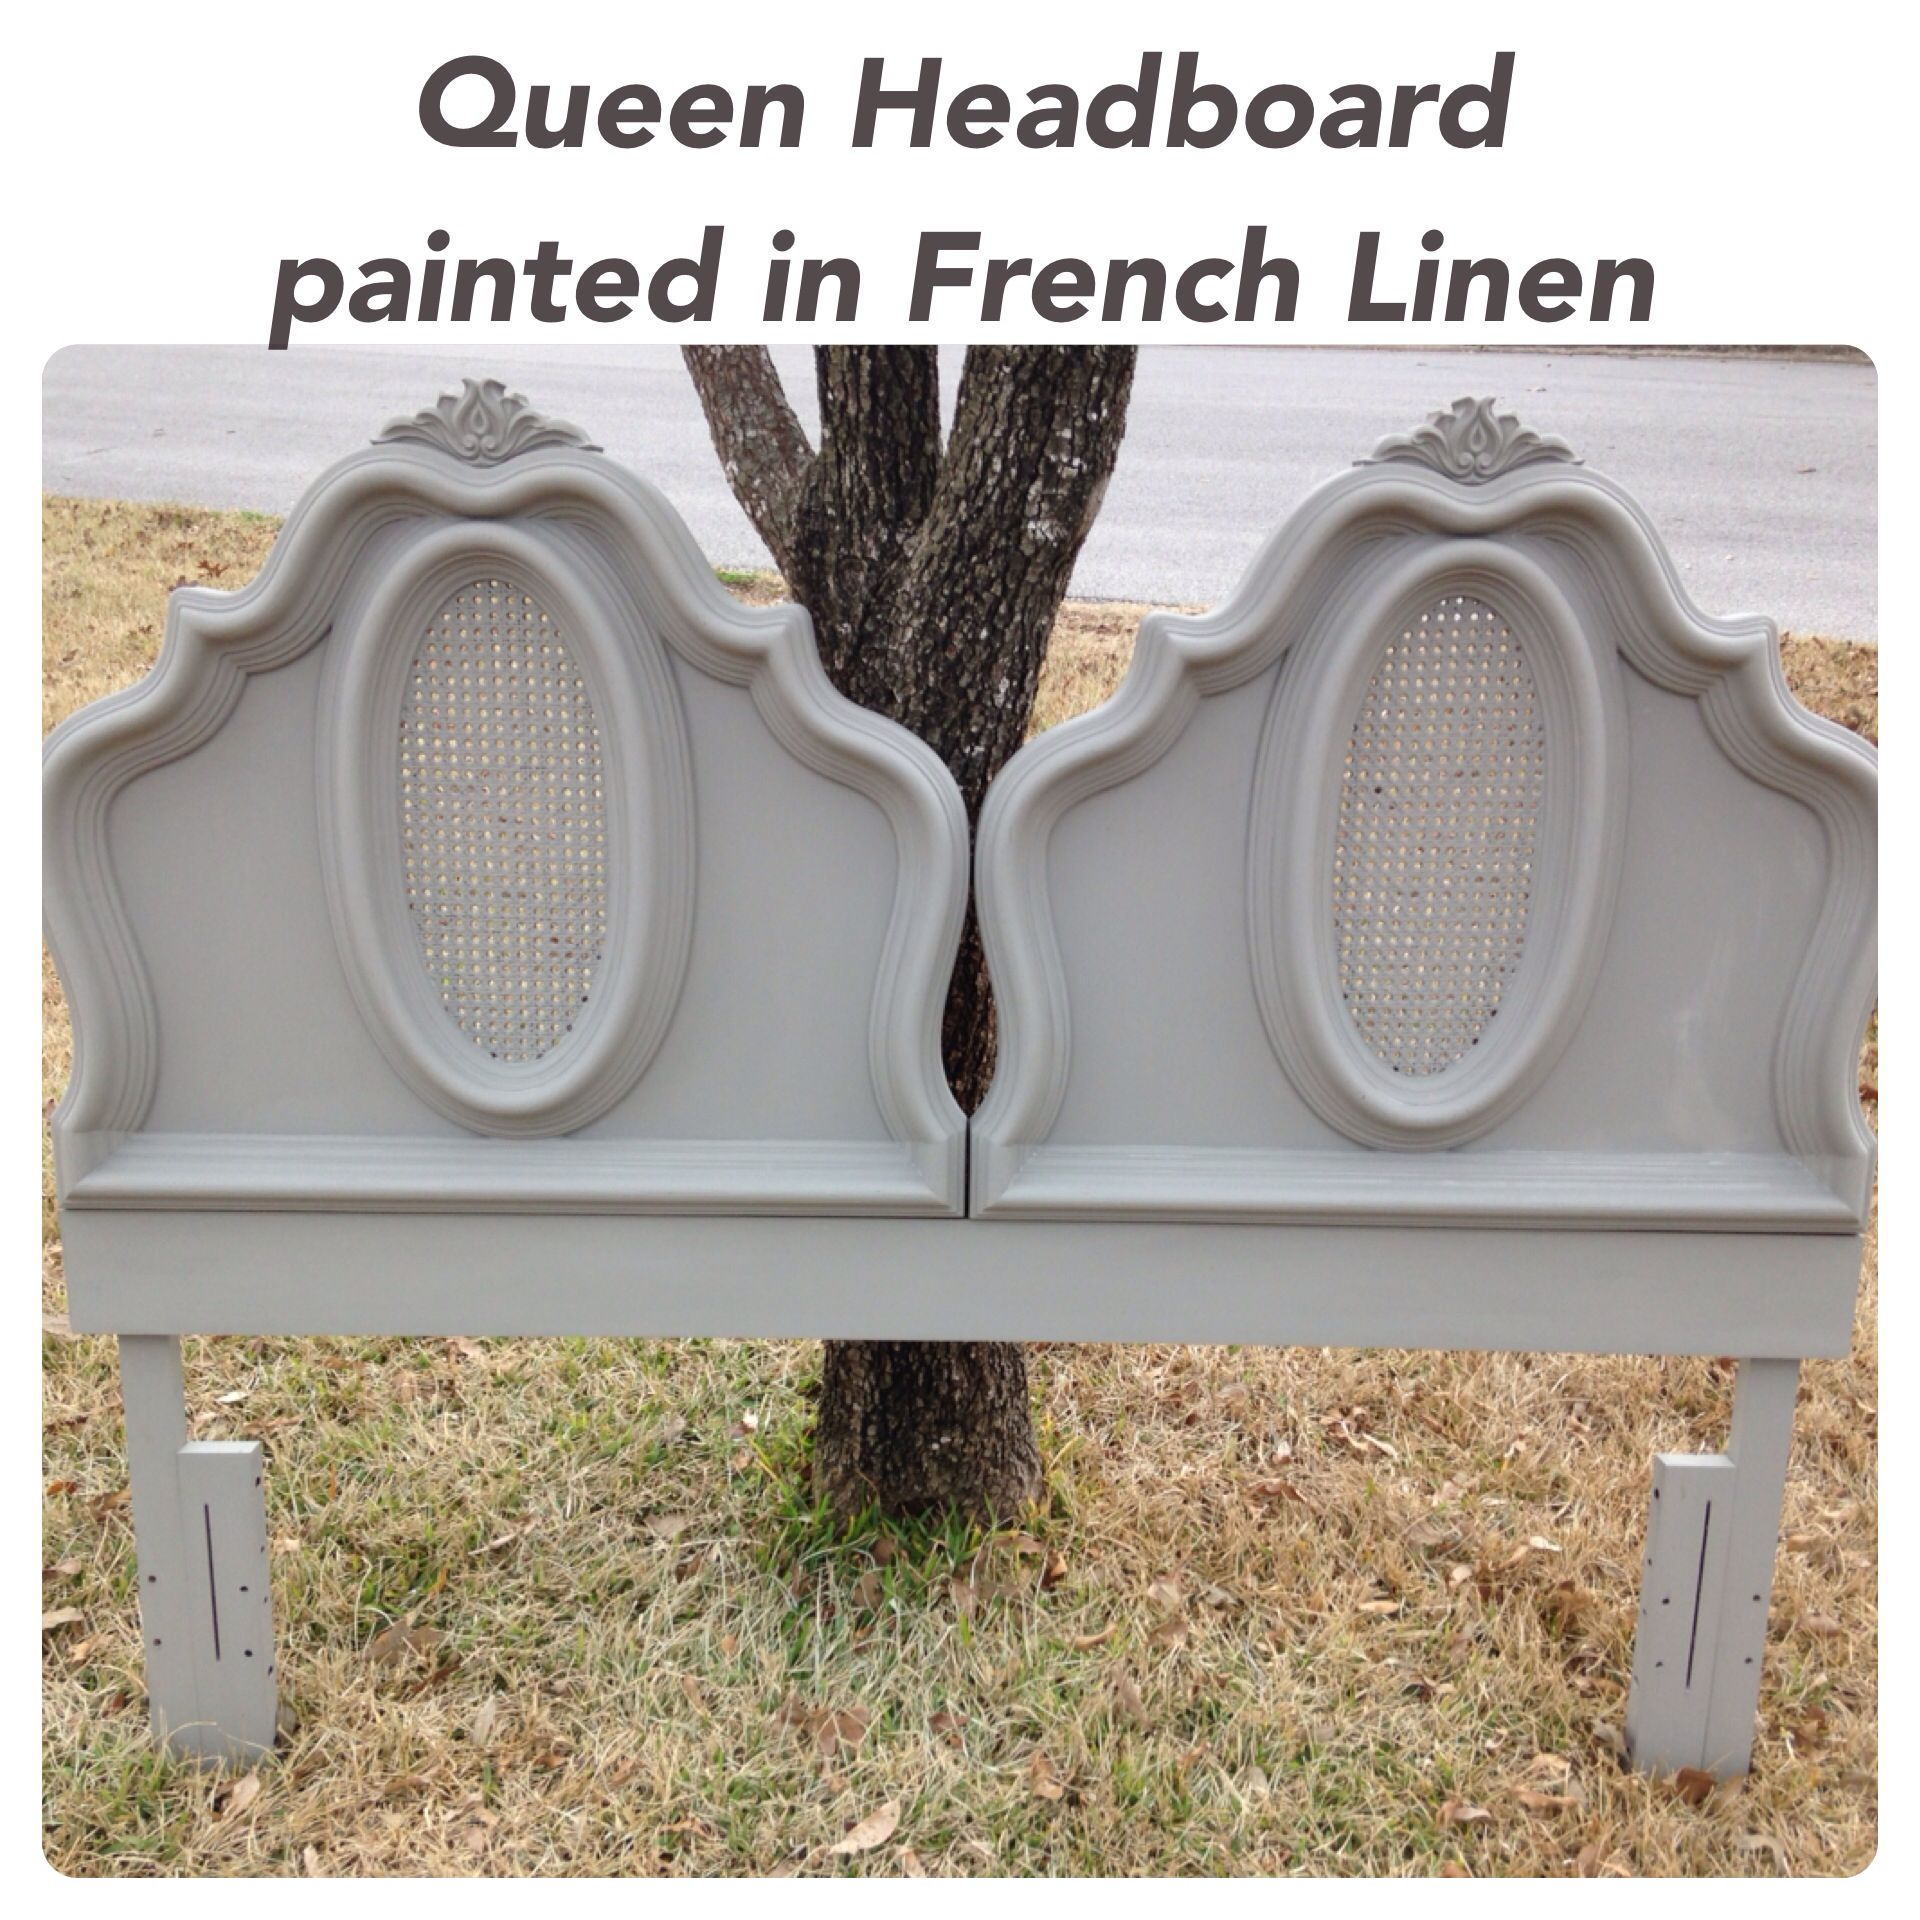 Shabby chic, romantic queen headboard painted in Annie Sloan French Linen by THE BIRCH TREE